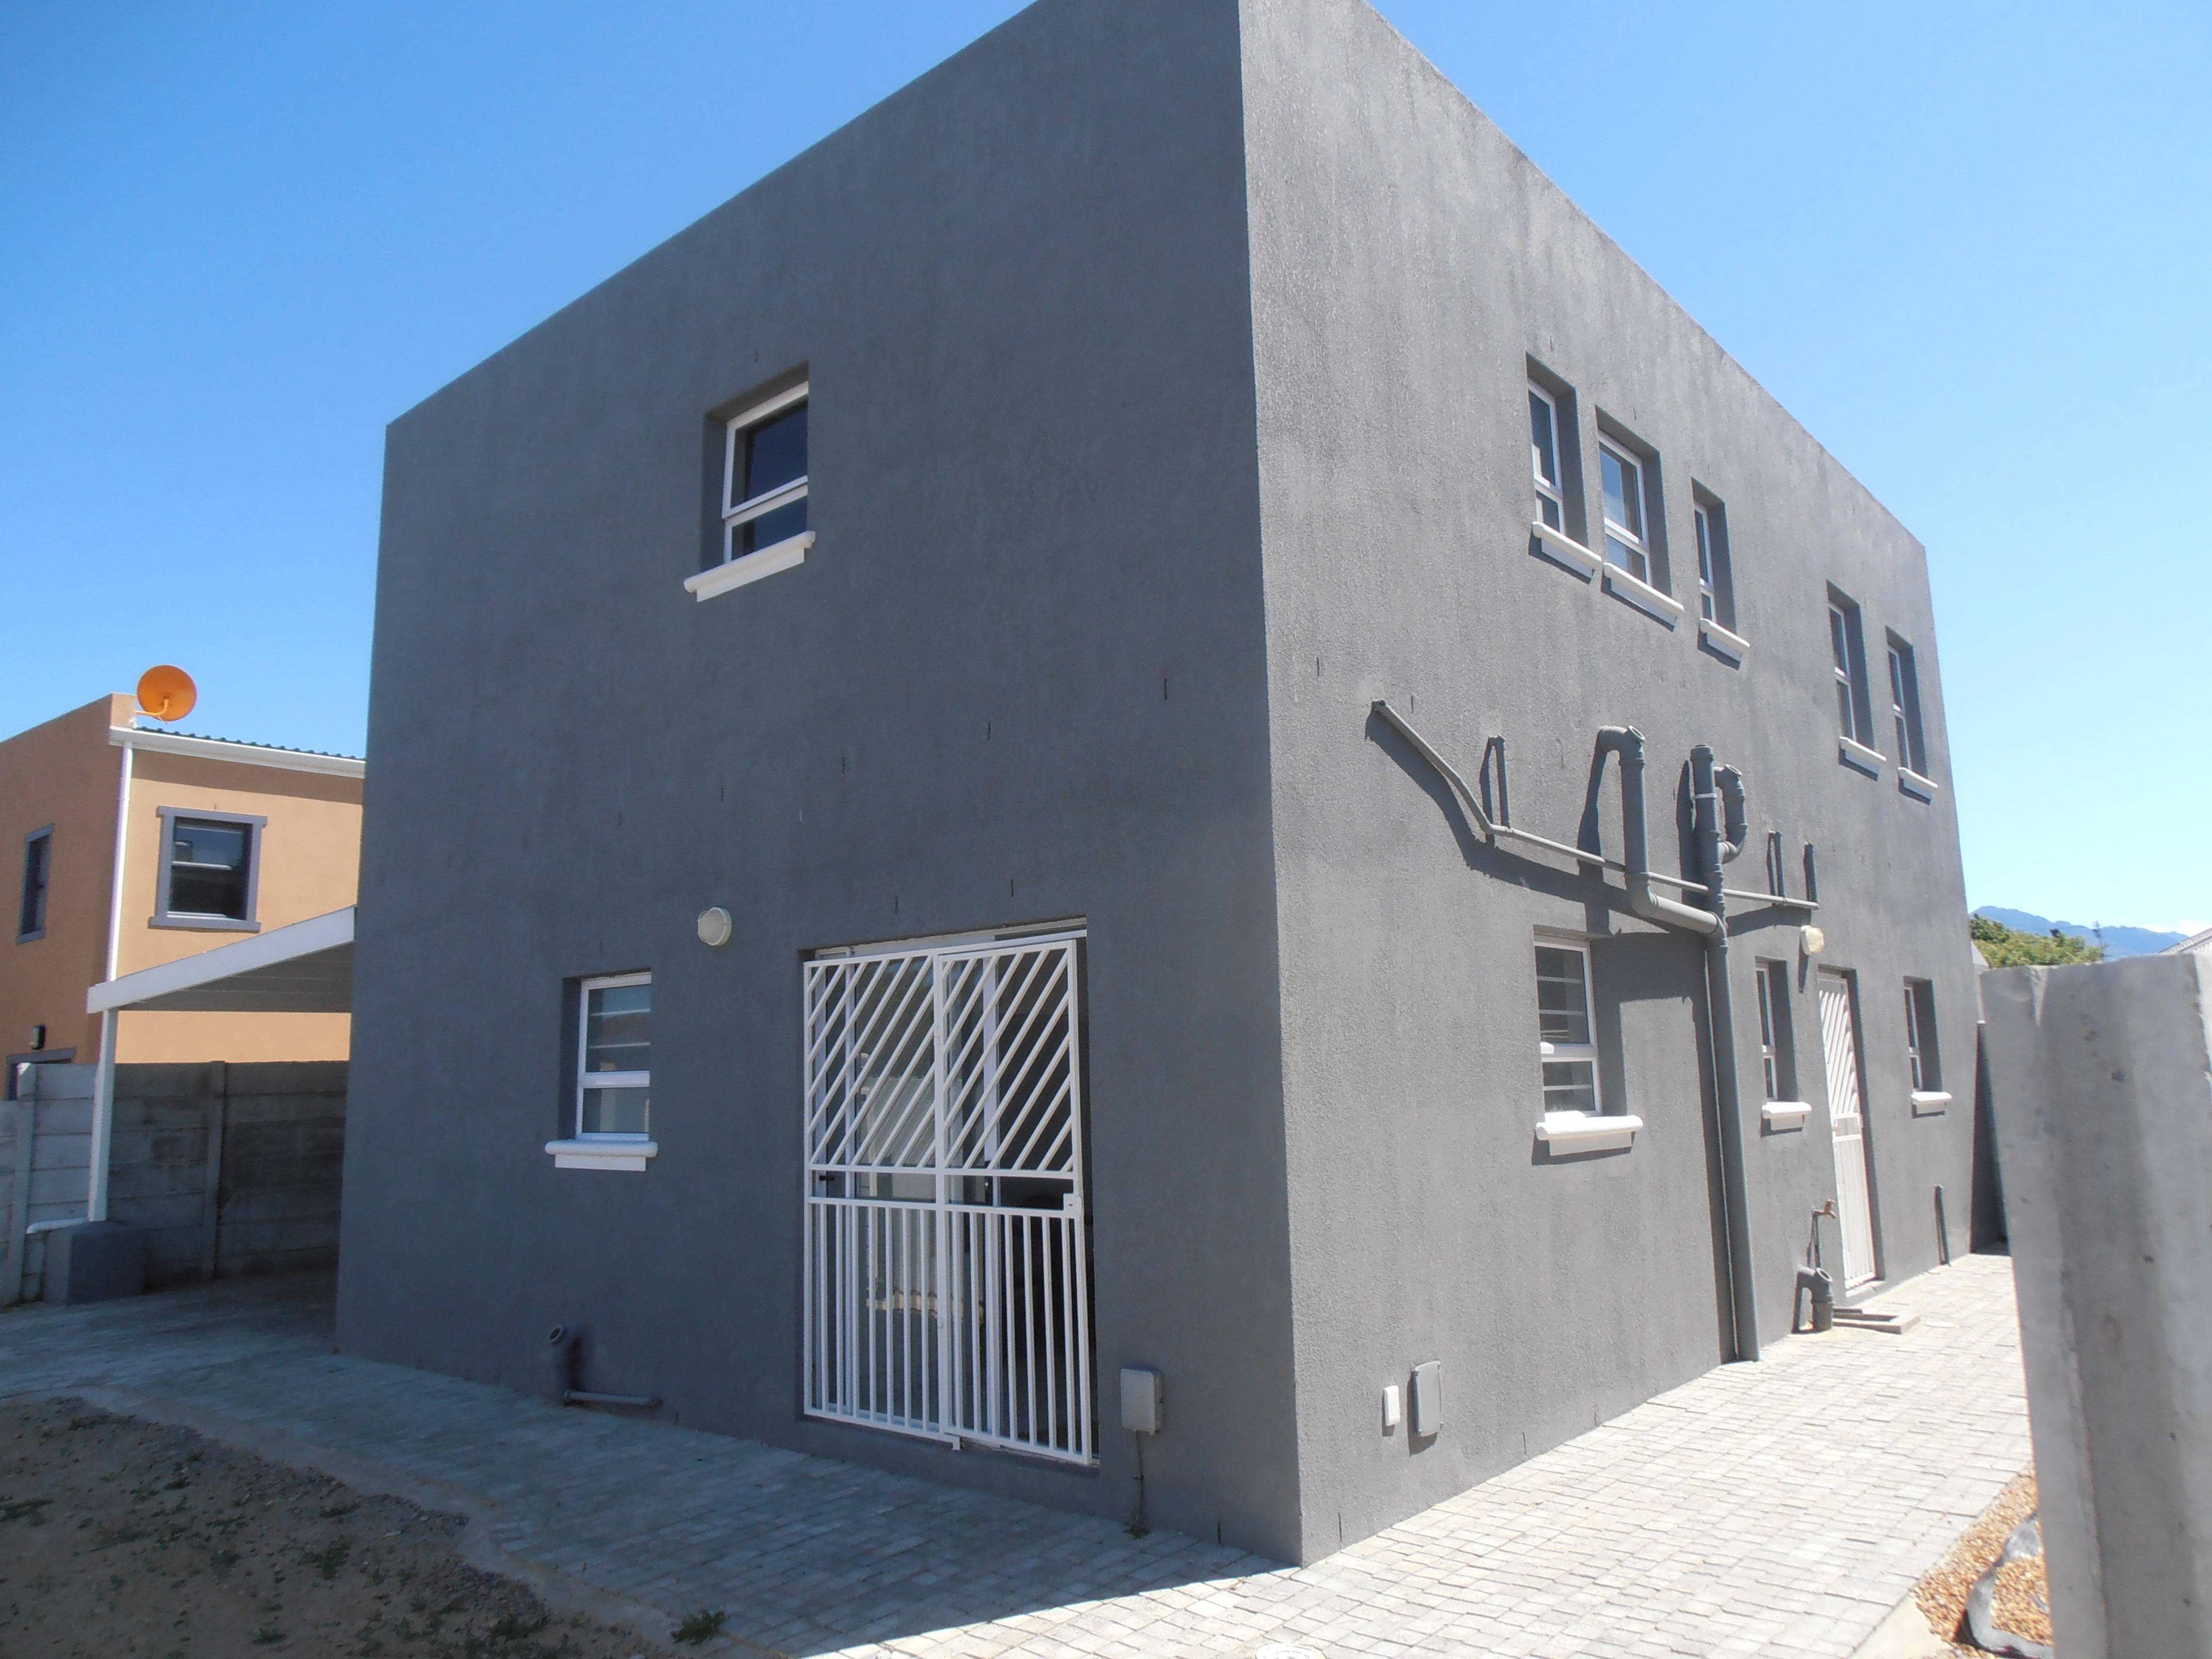 4 Bedroom House For Sale in Strand Central